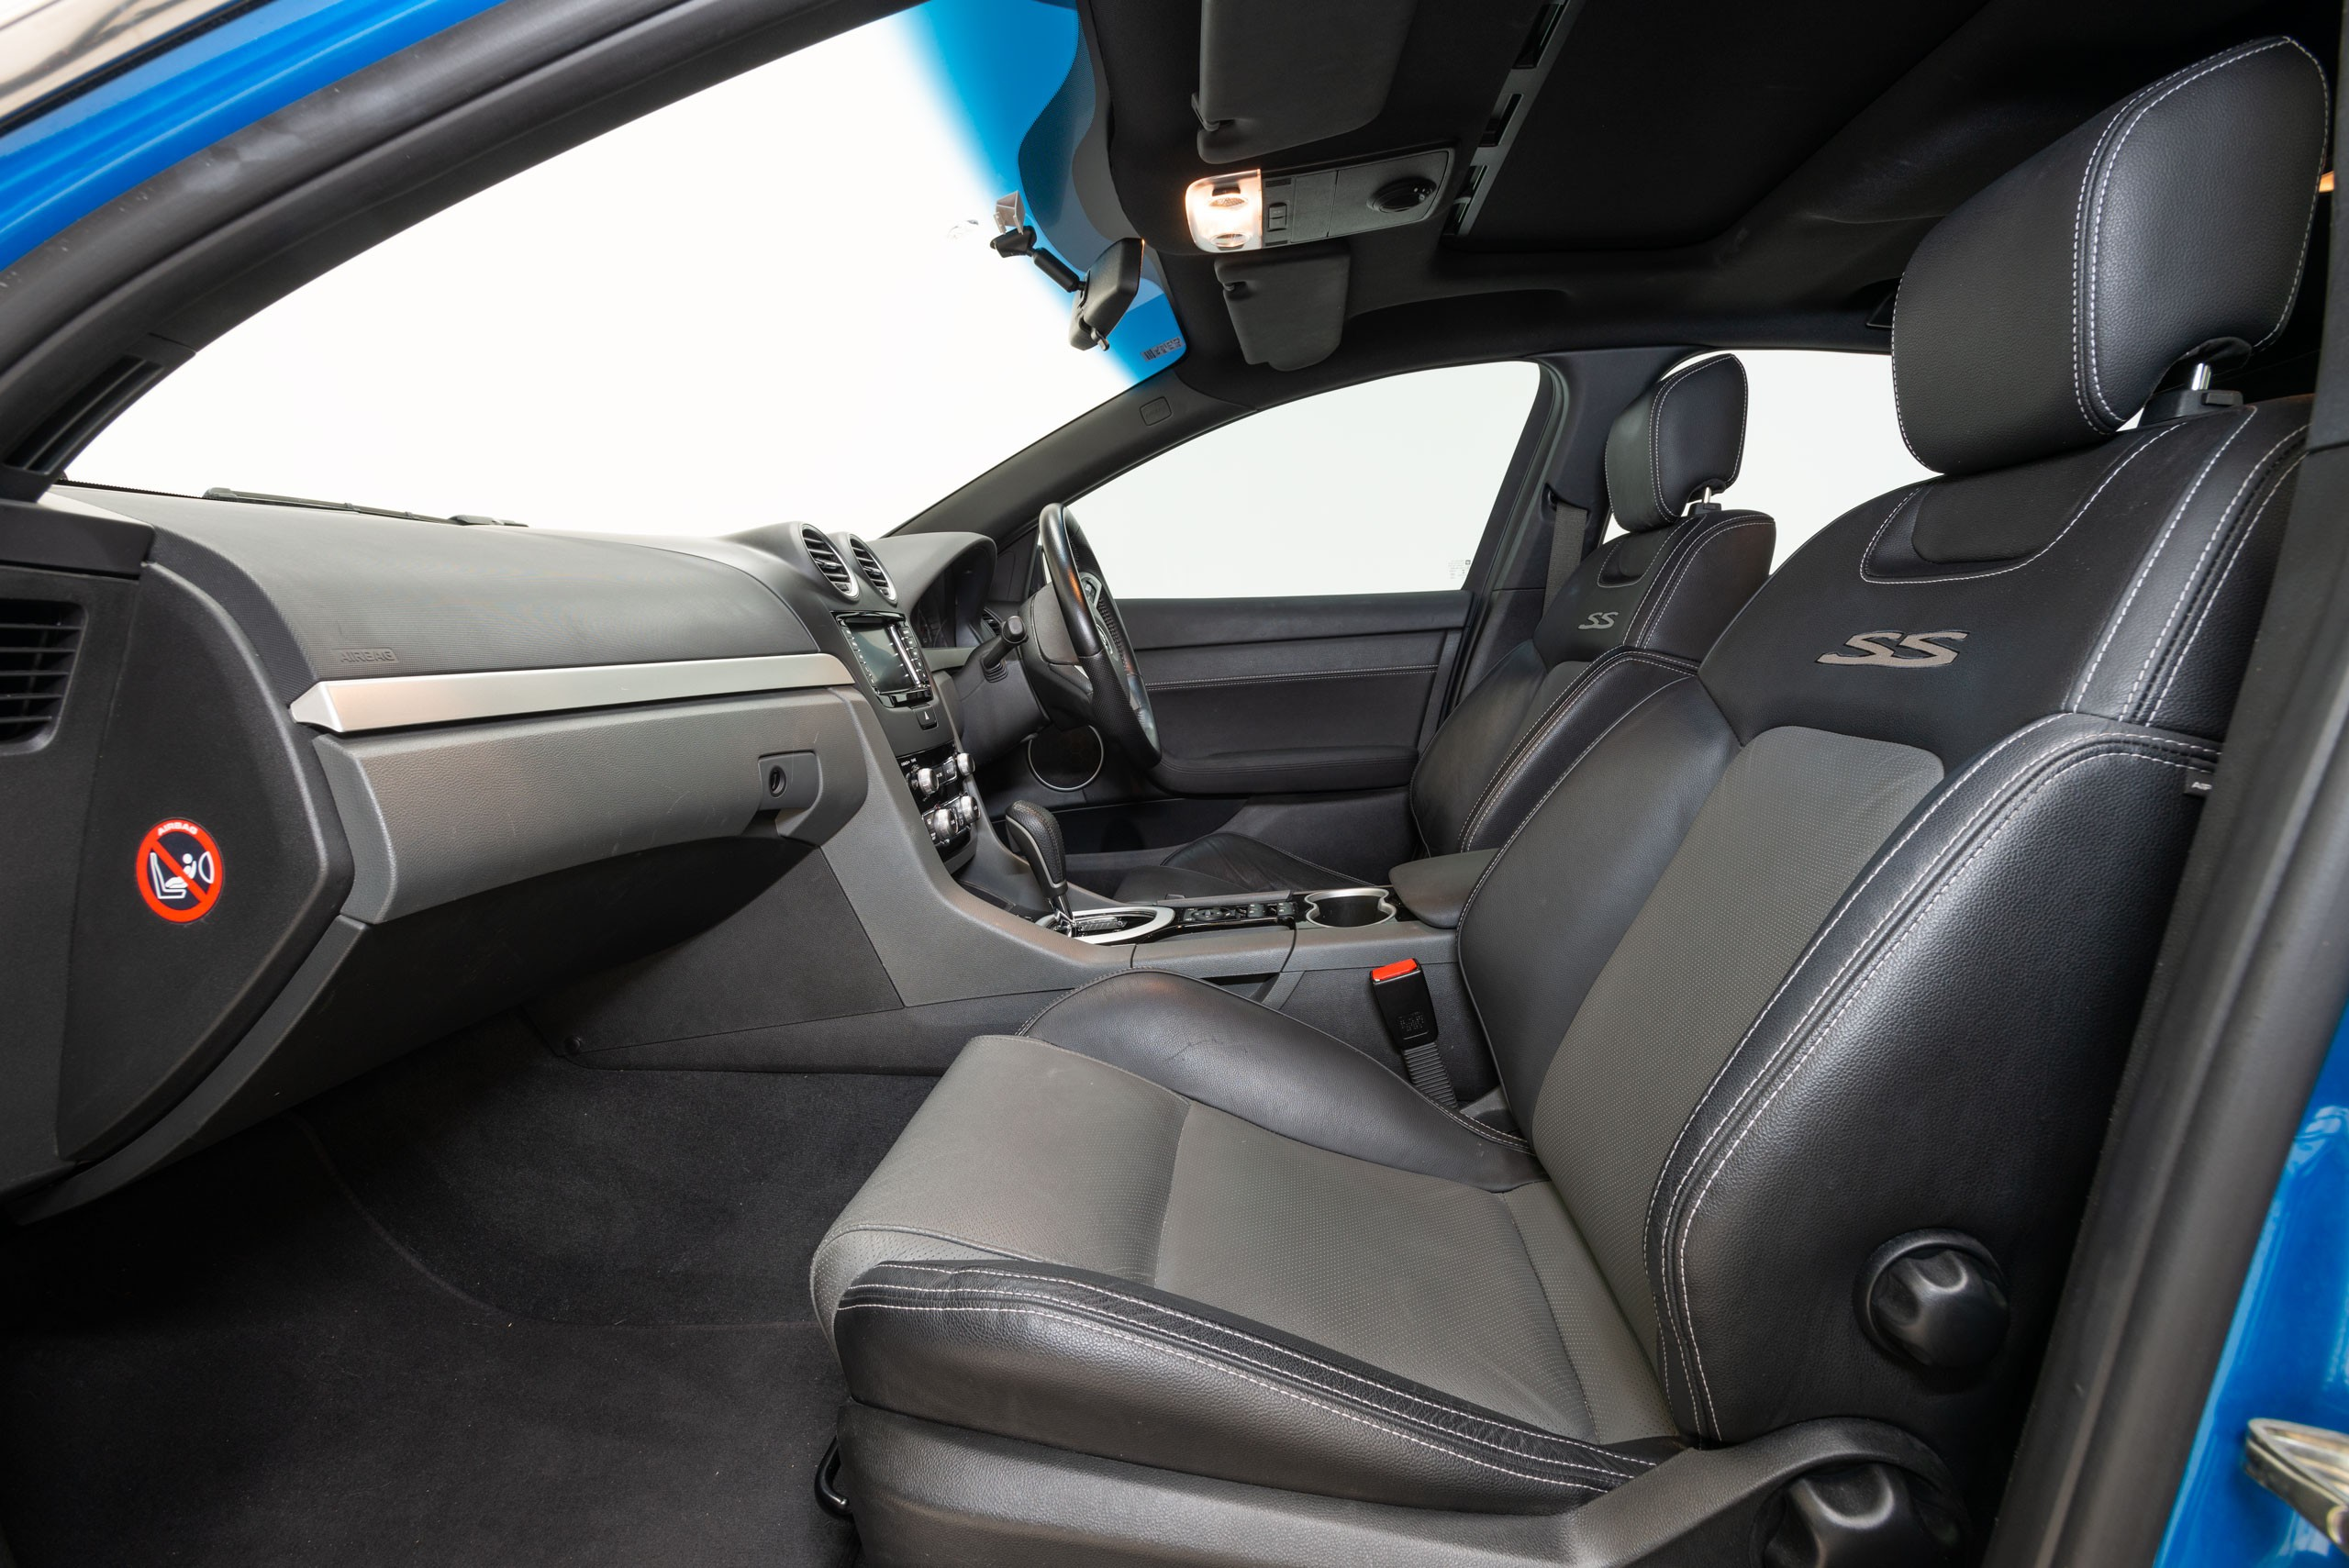 Image 9/10 of 2012 Holden Commodore SS V Z Series